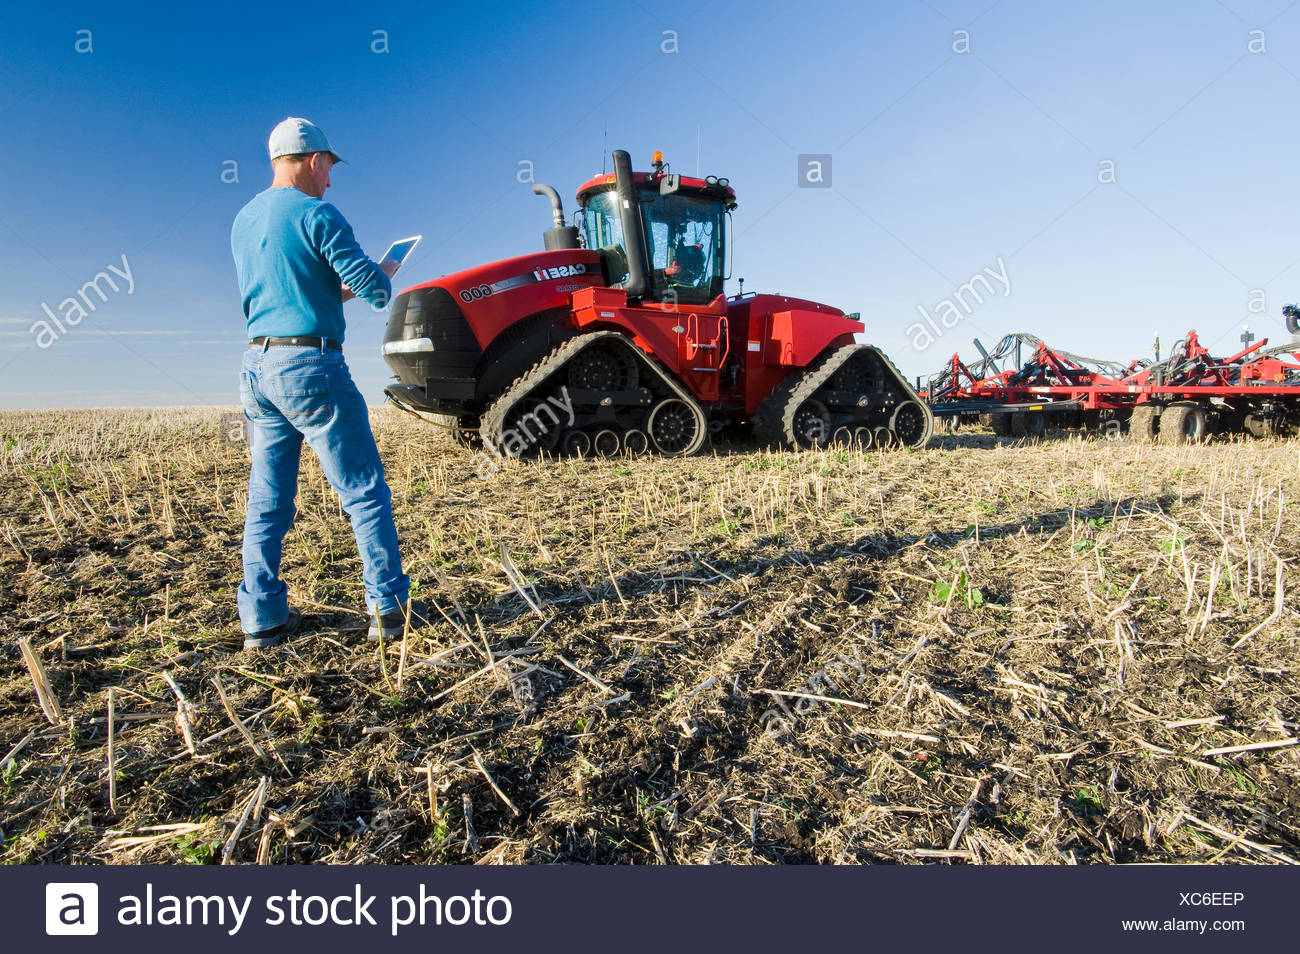 farmer using a tablet in front of a tractor and air seeder planting winter wheat in a zero till field containing canola stubble, near Lorette, Manitoba, Canada - Stock Image